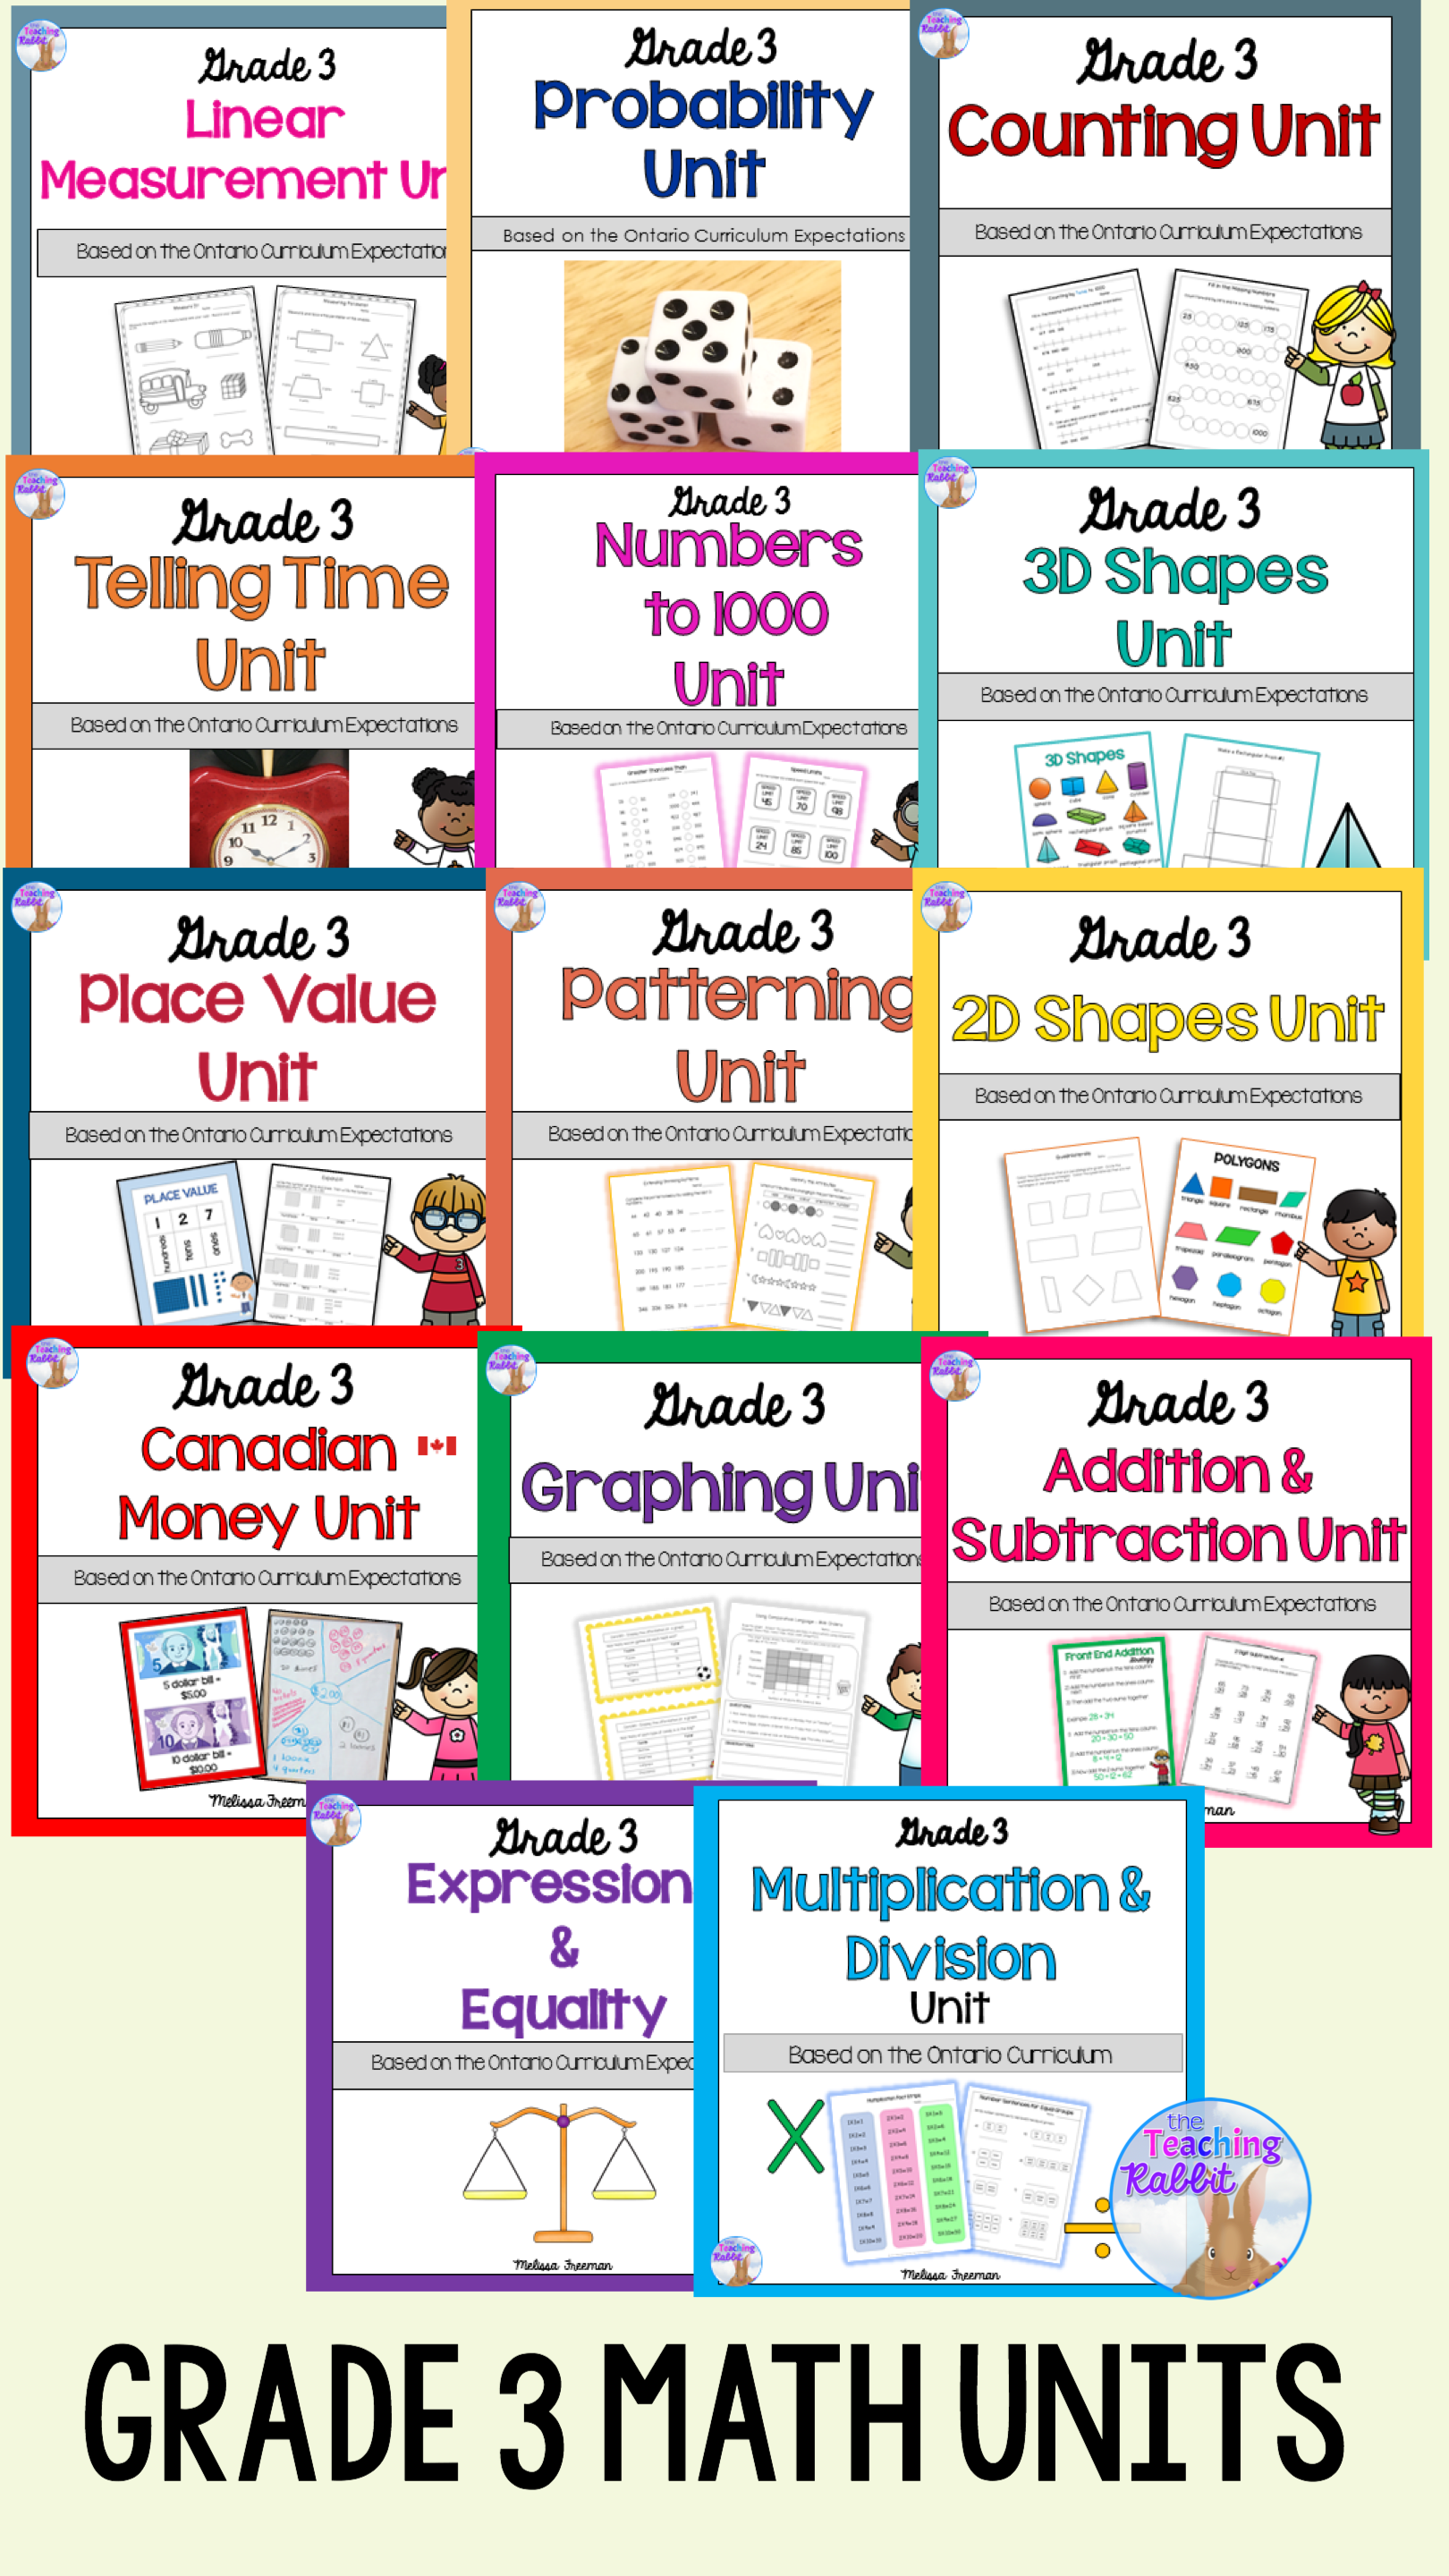 Grade 3 Math Units Full Year Bundle With Images